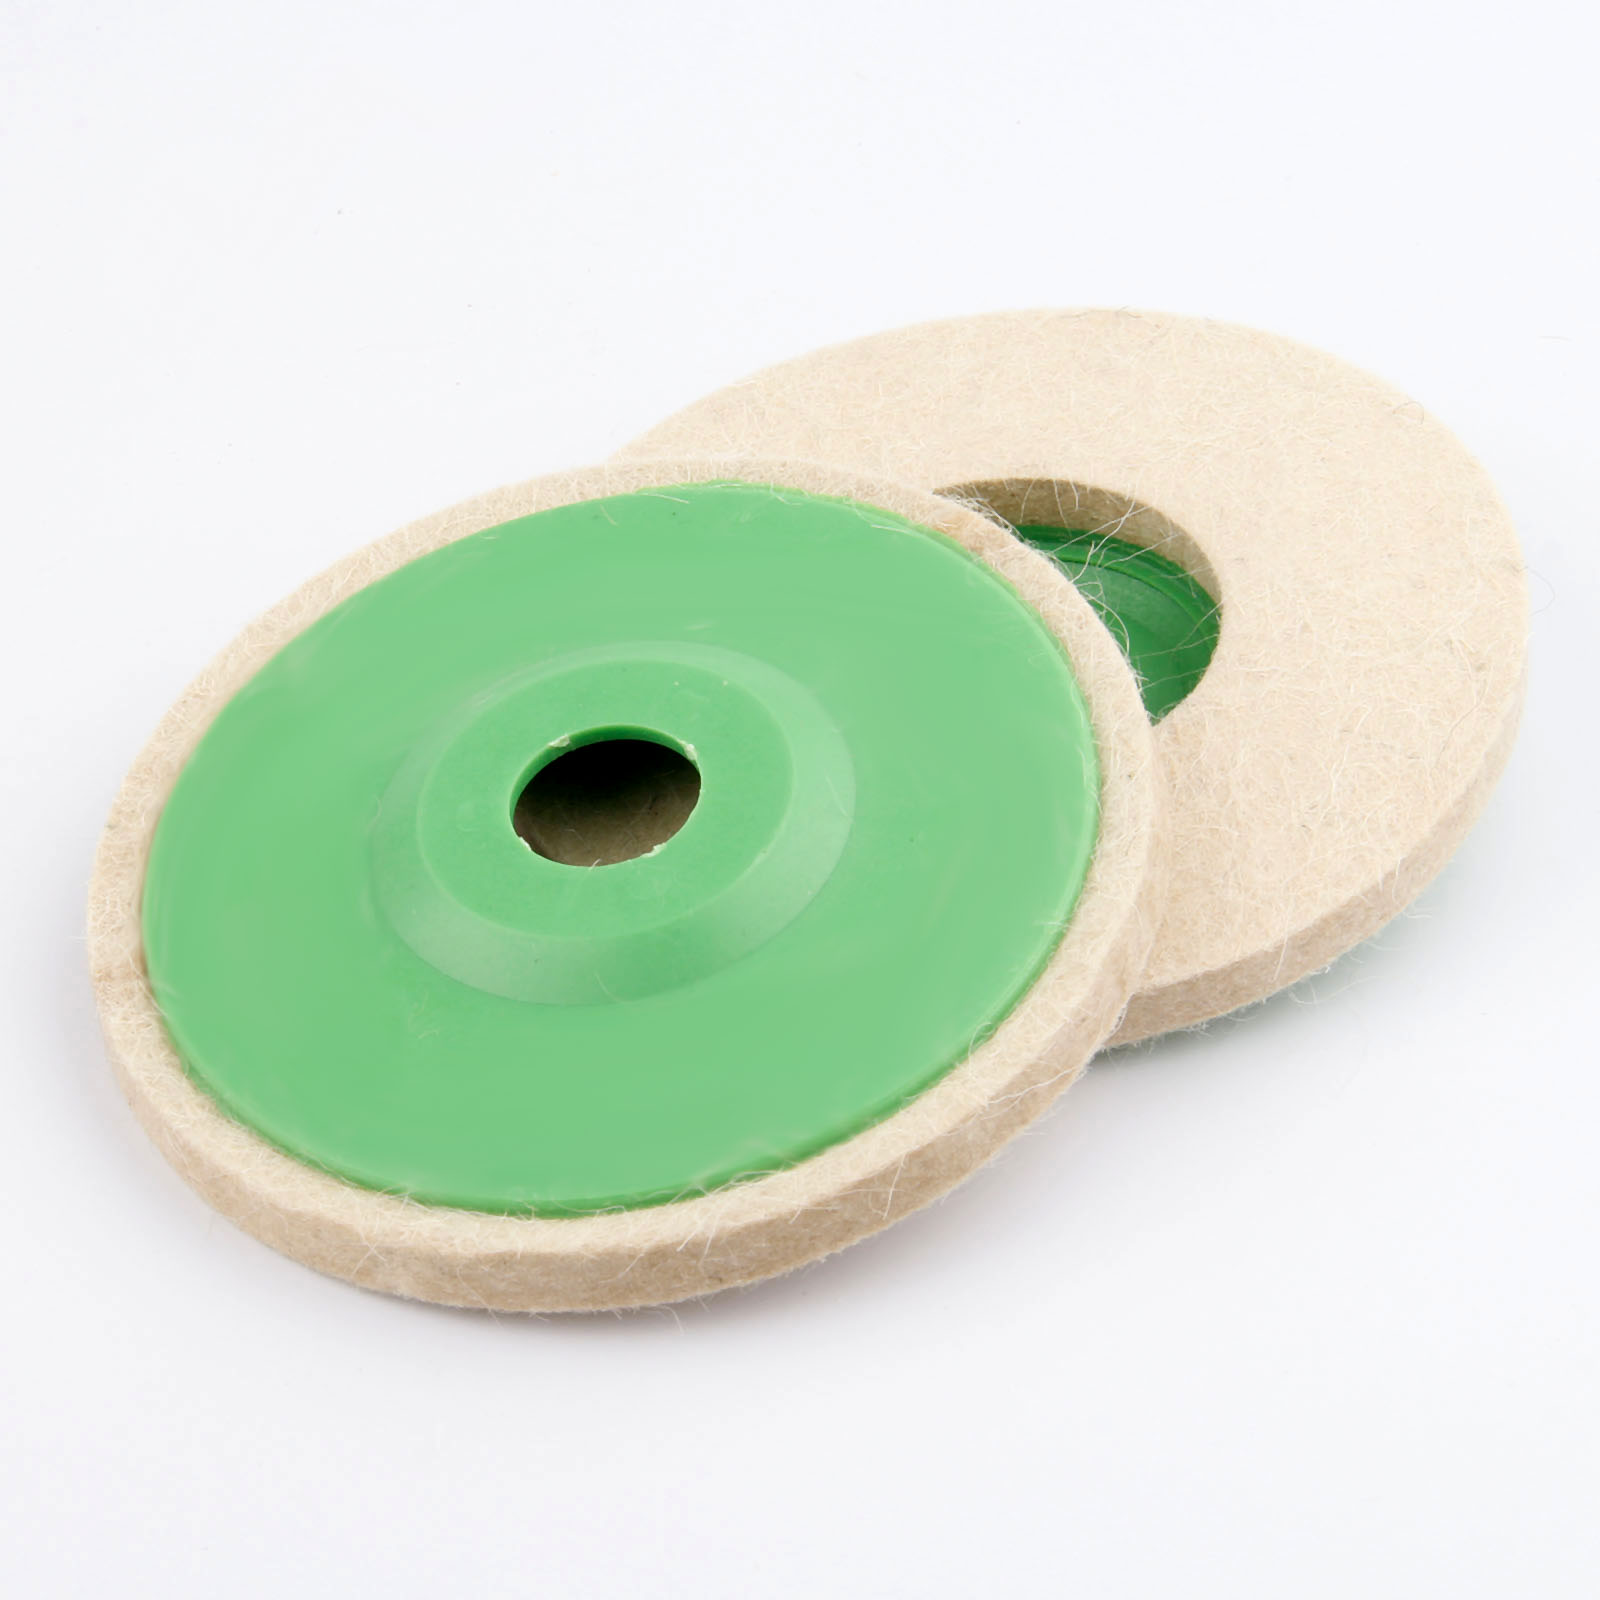 5in 125mm Wool Felt Grinding Wheel Pad Polishing Disc Buffer Polisher Tools Washable And Reused Felt Design